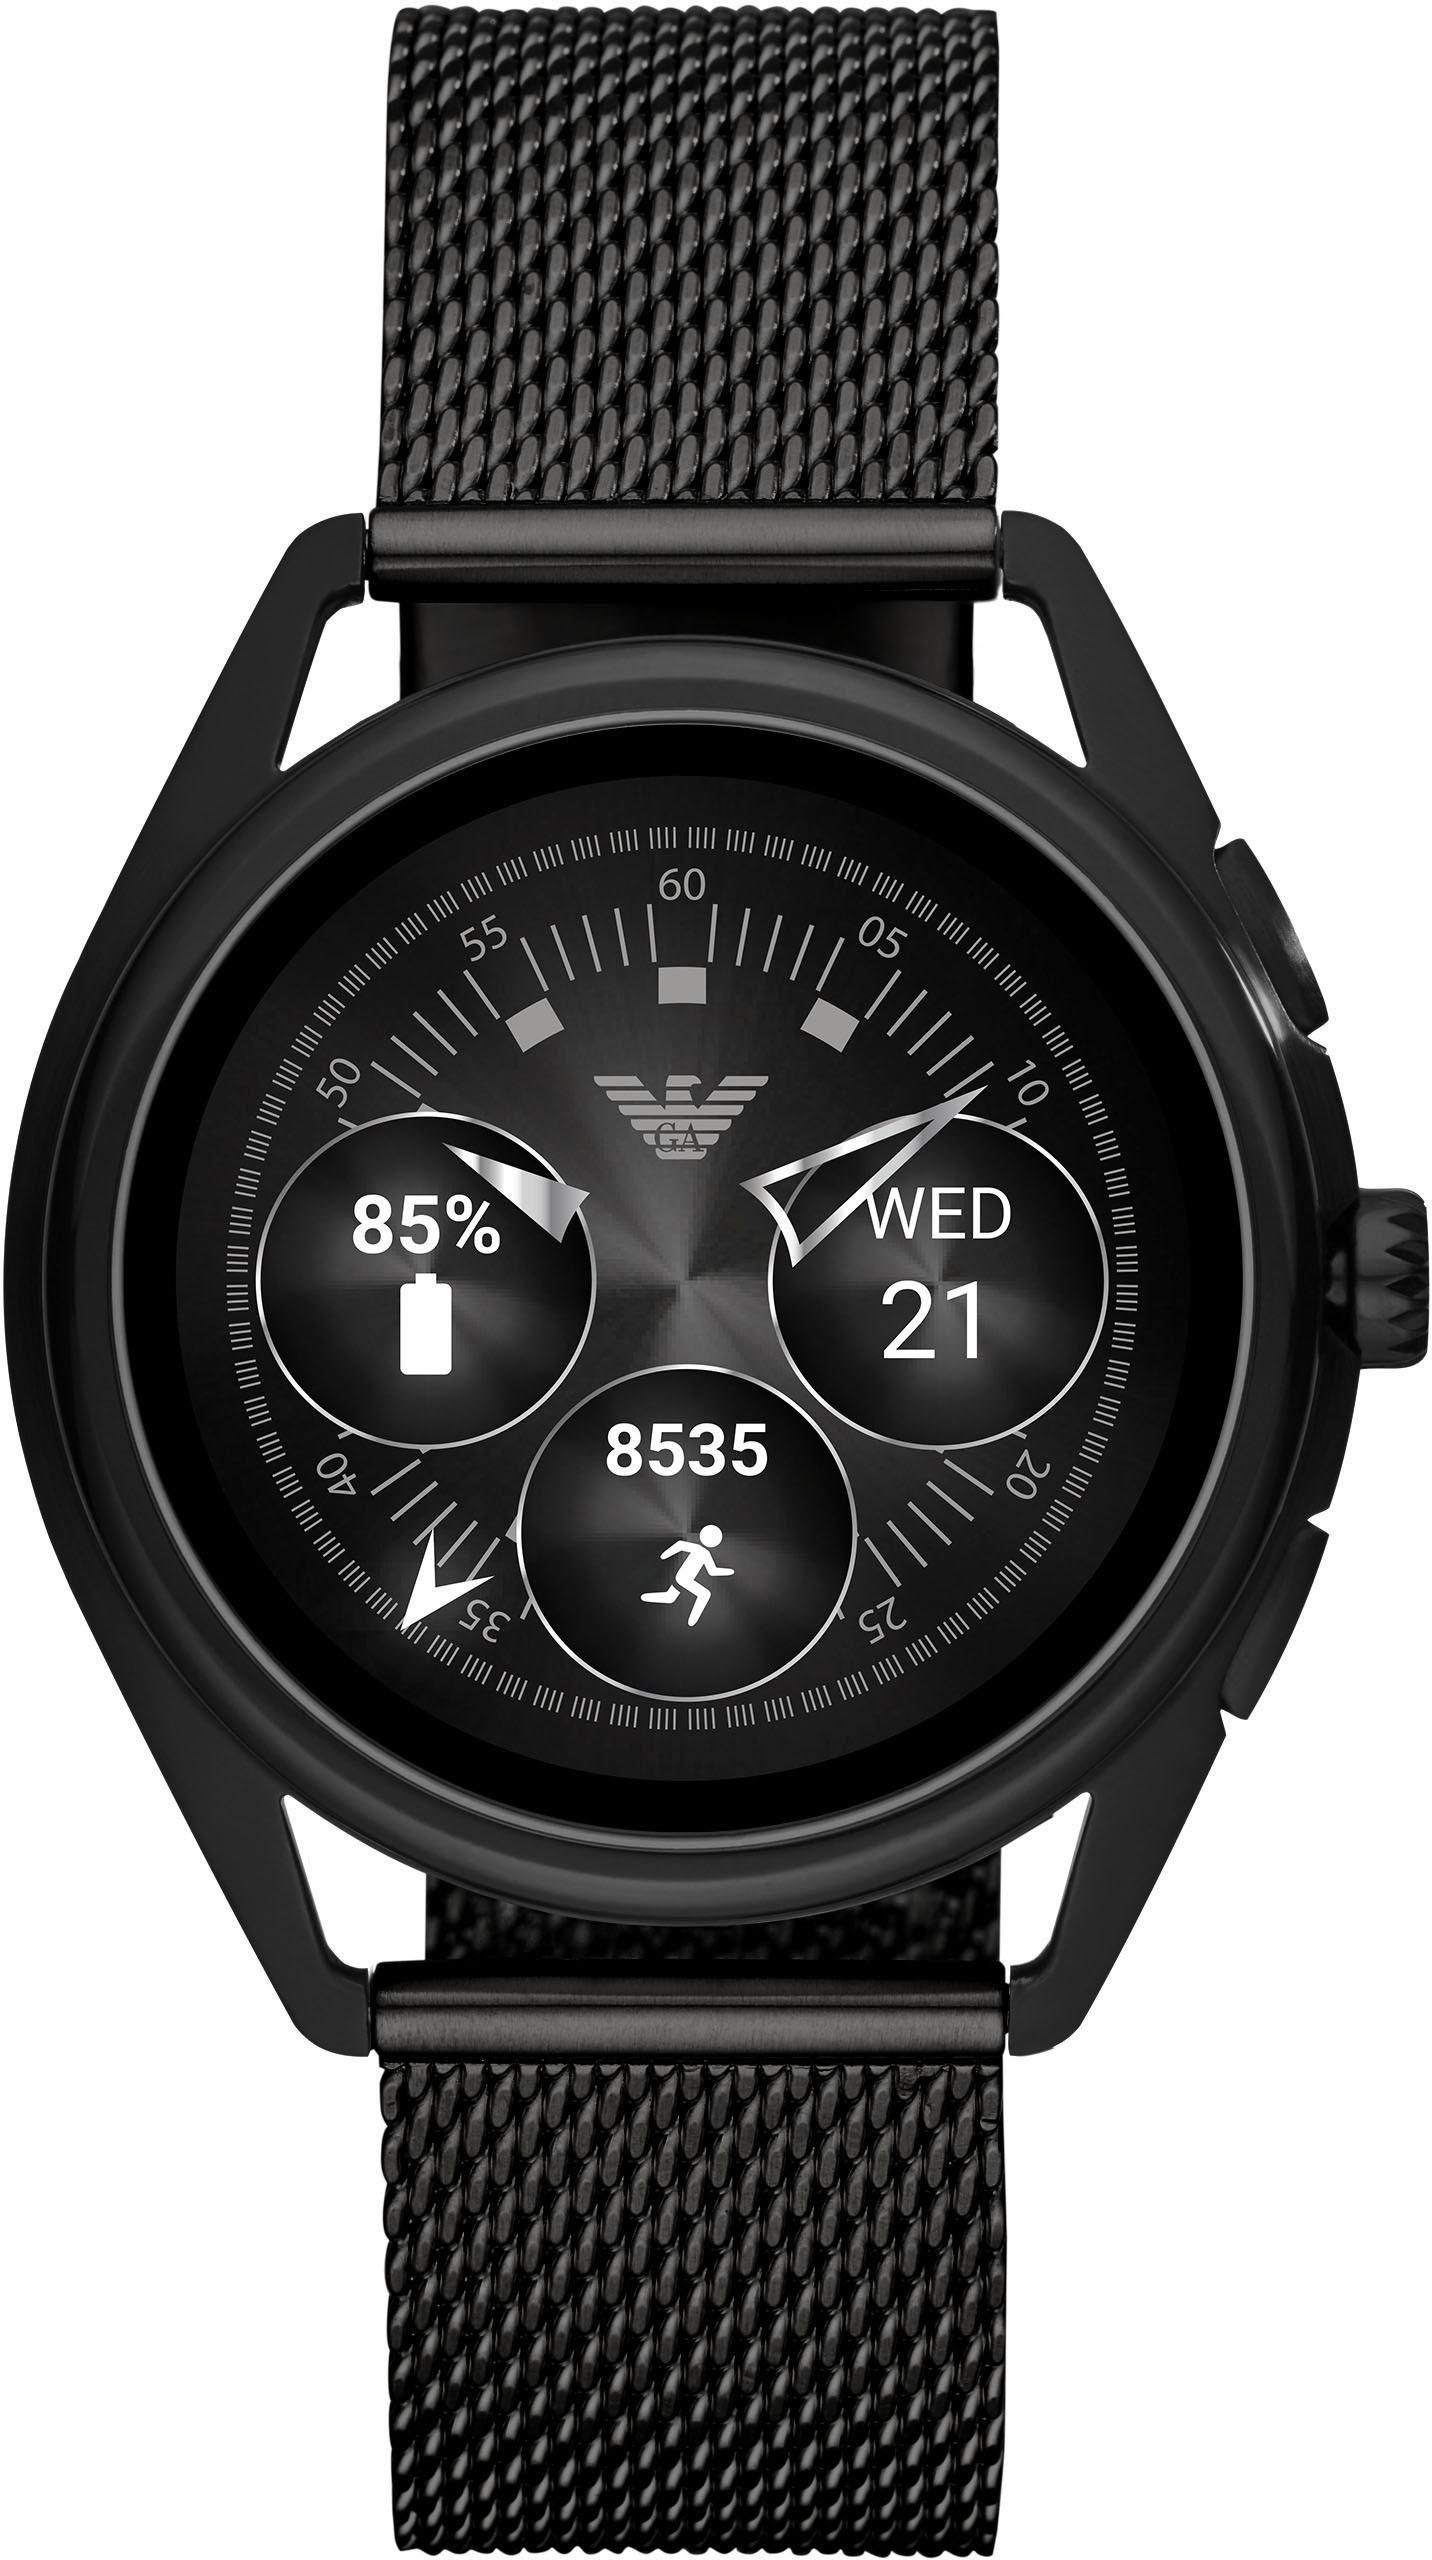 EMPORIO ARMANI CONNECTED ART5019 Smartwatch ( 1,19 Zoll, Wear OS by Google) | Uhren > Smartwatches | Emporio Armani Connected